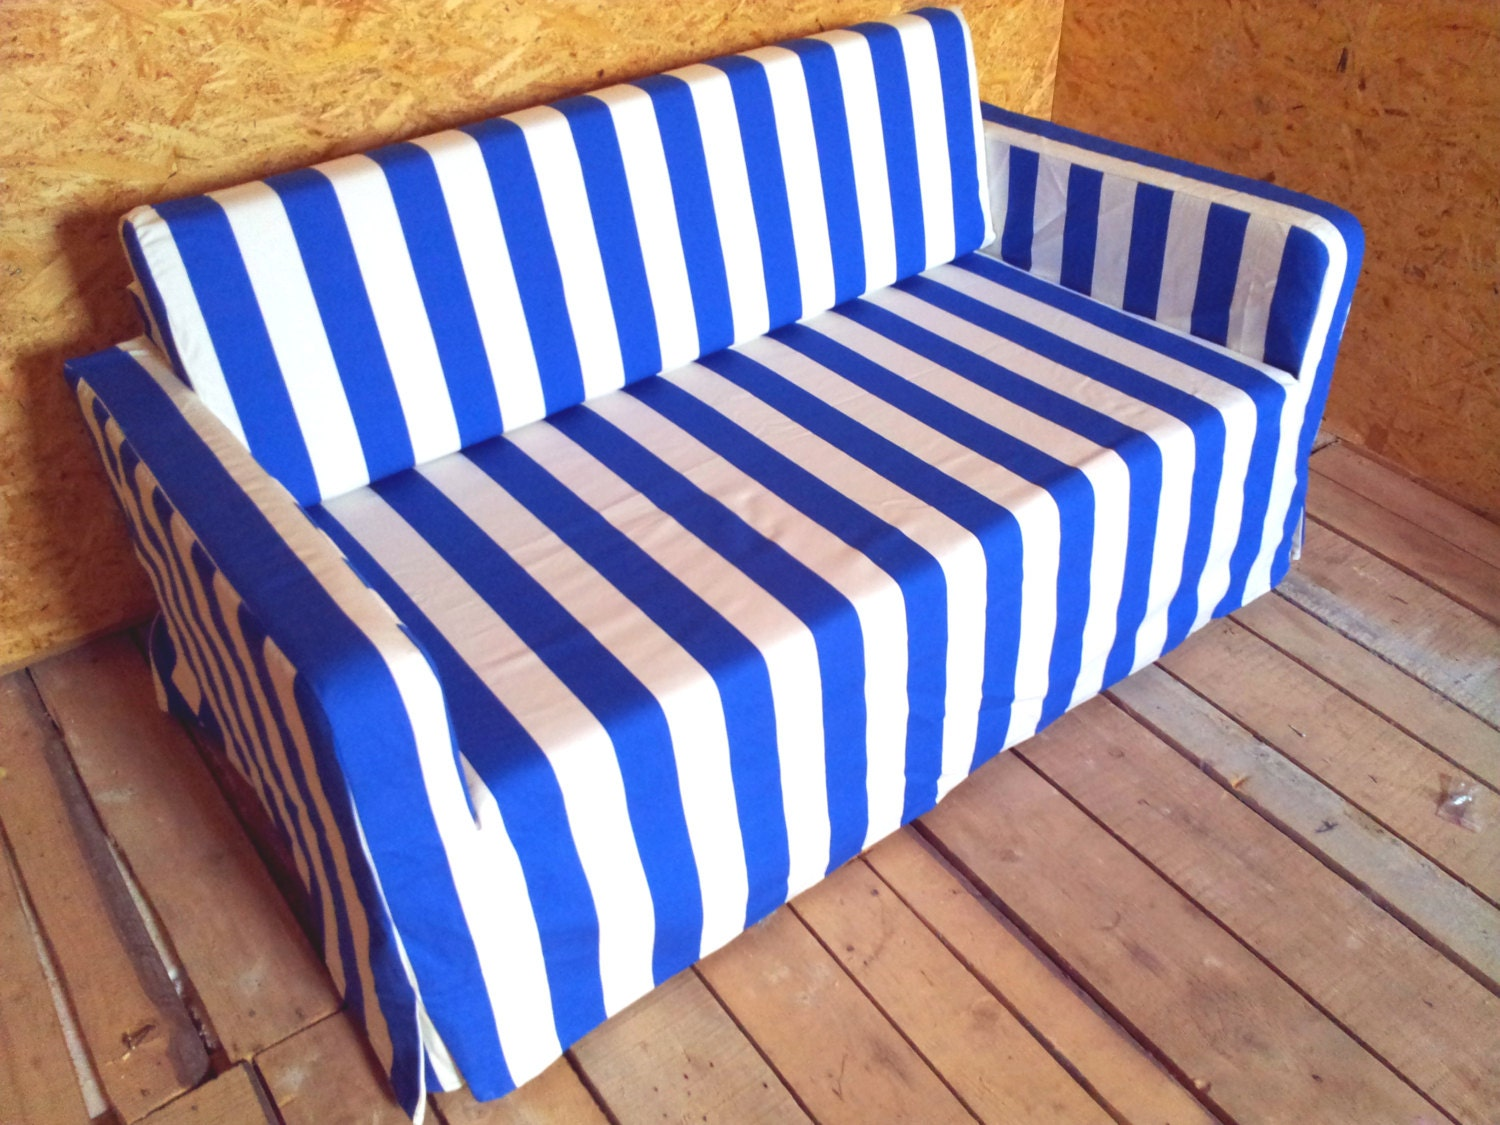 Slipcover For Solsta Sofa Bed From Ikea Nice Blue Stripes